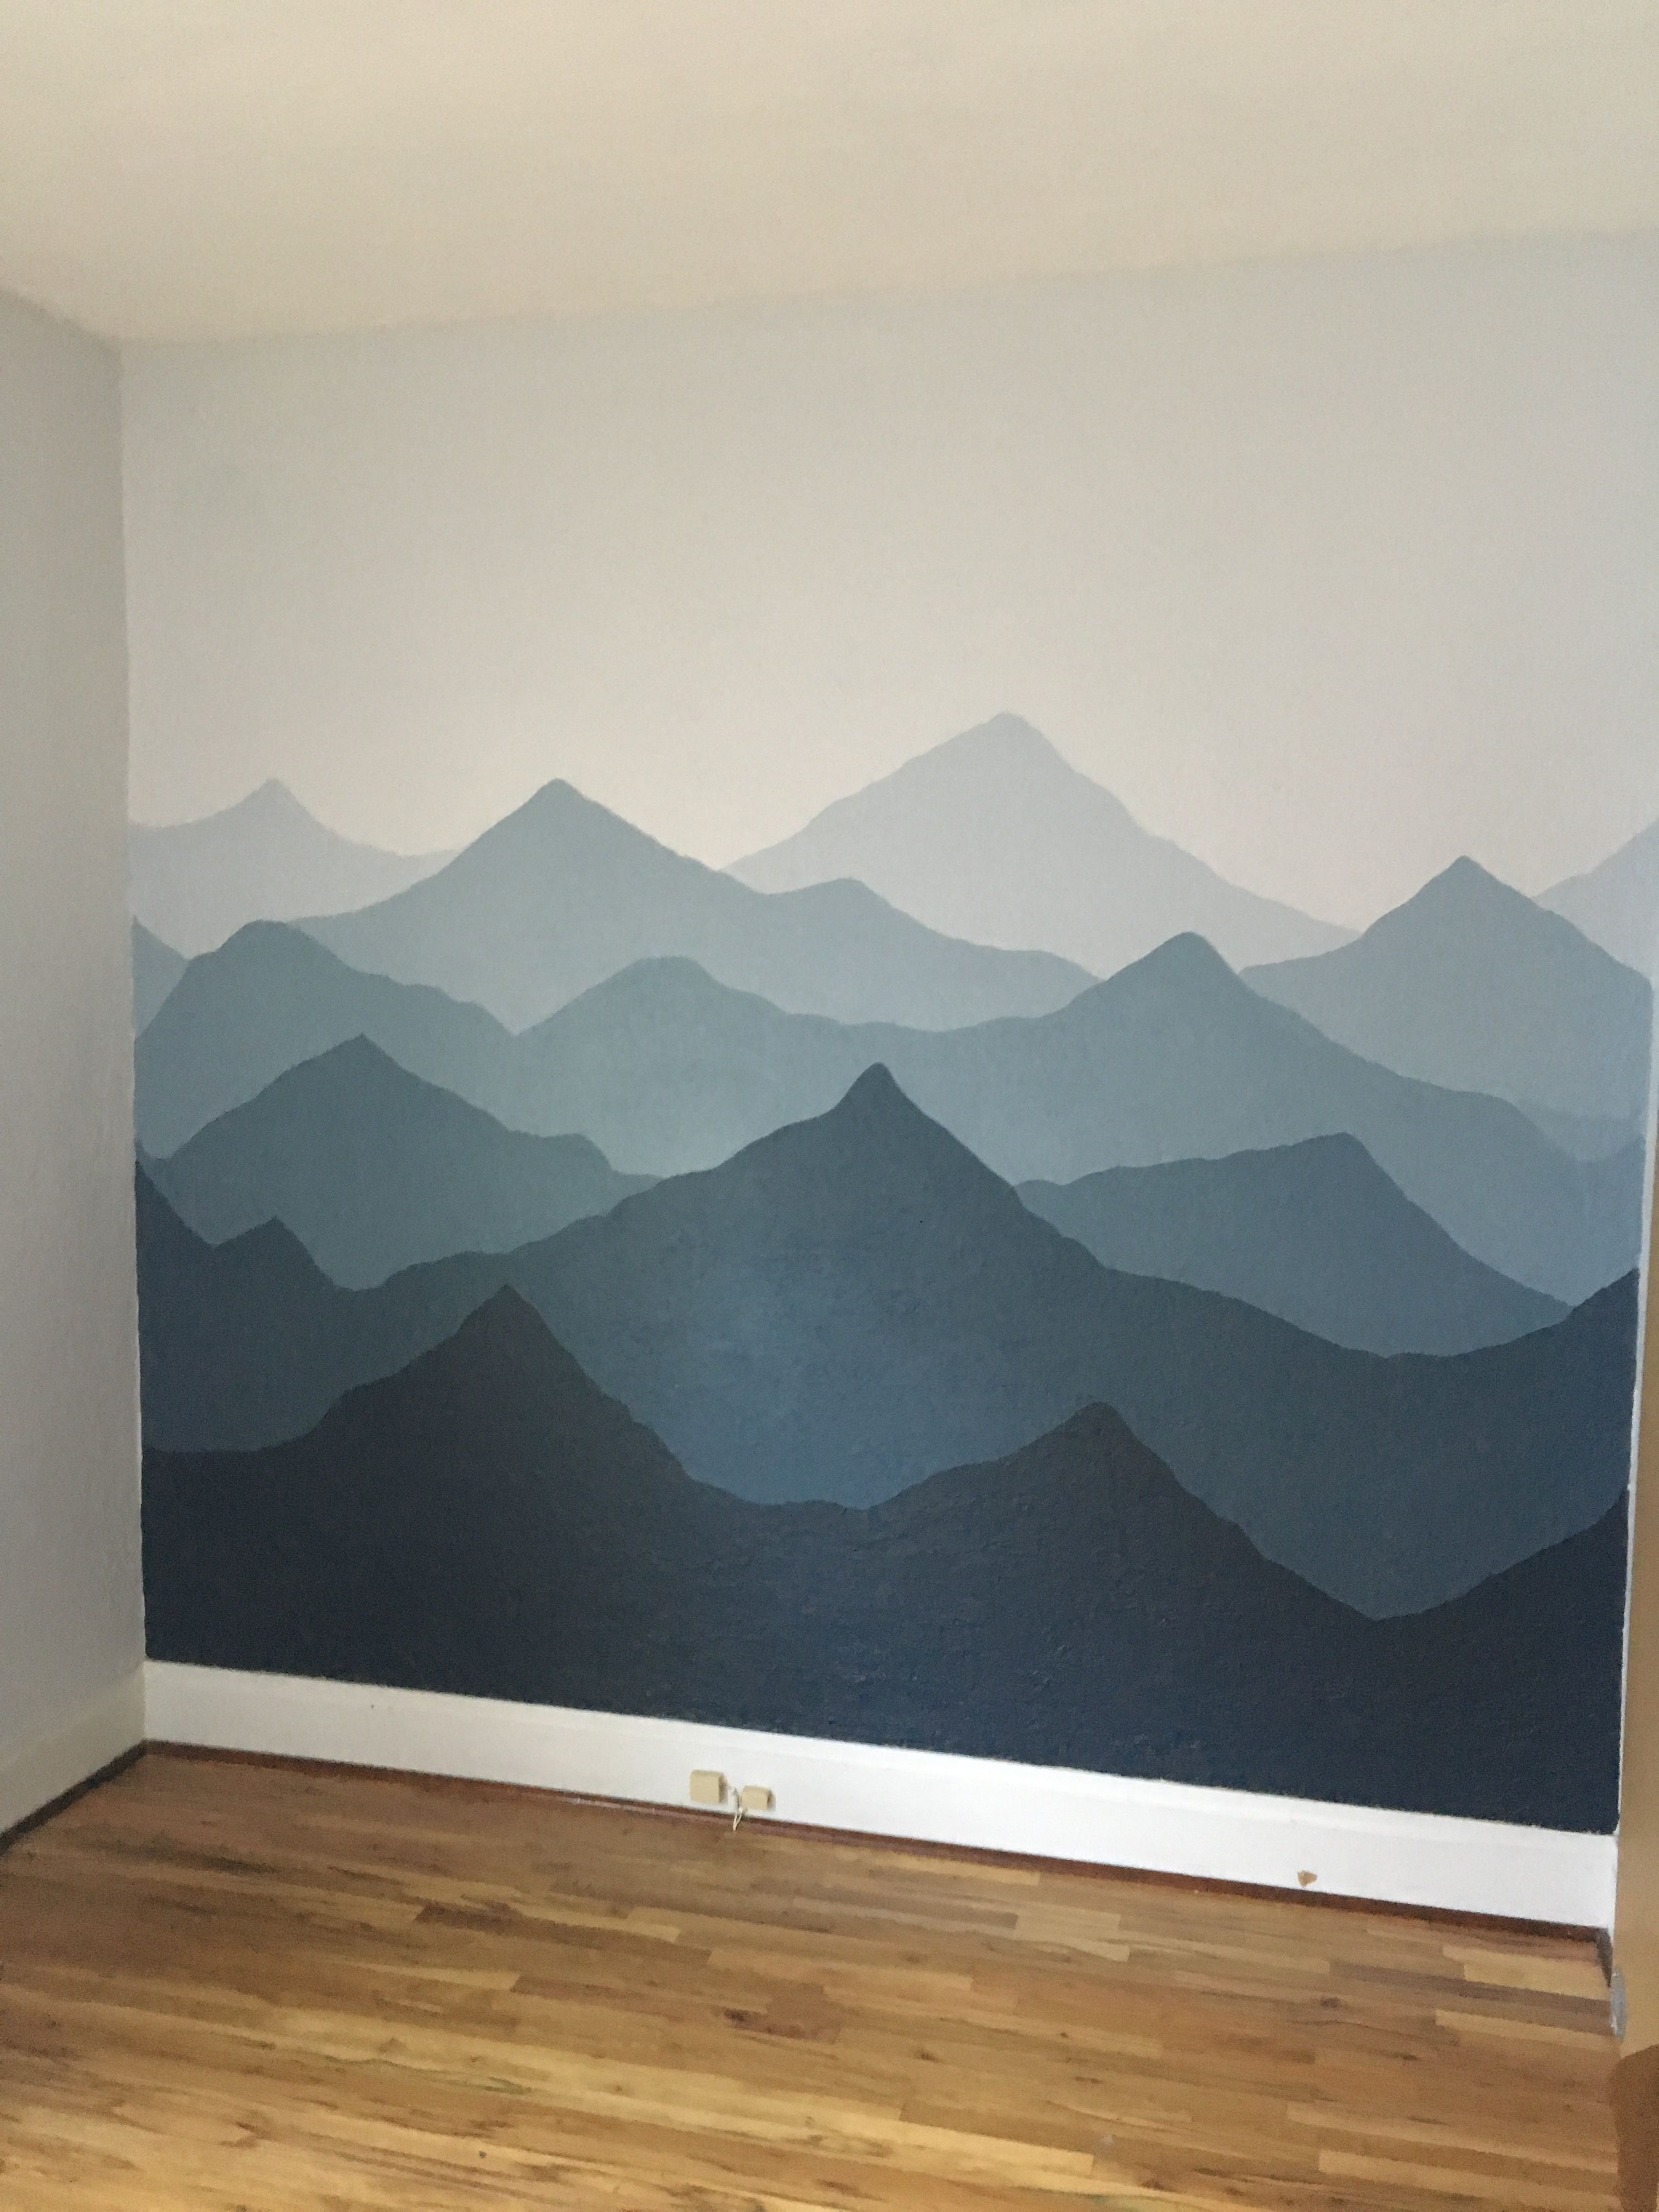 Painted A Mountain Mural In Our Nursery Used Sherwin Williams Rock Candy And Sea Serpent So Hy With How It Turned Out